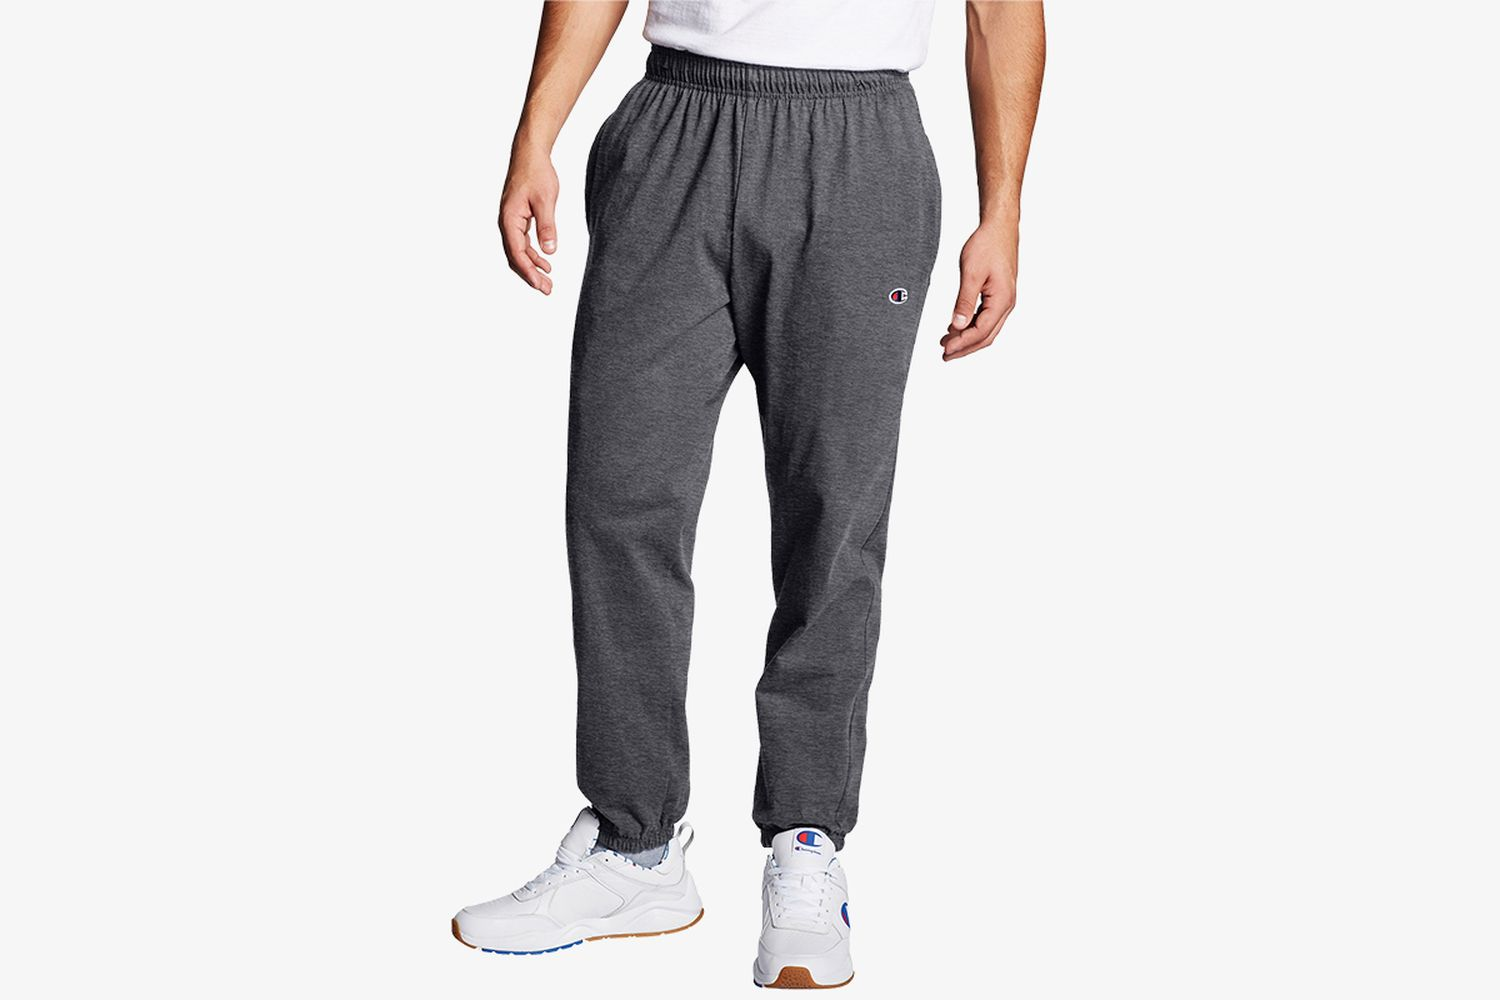 Men's Closed Bottom Jersey Sweatpants